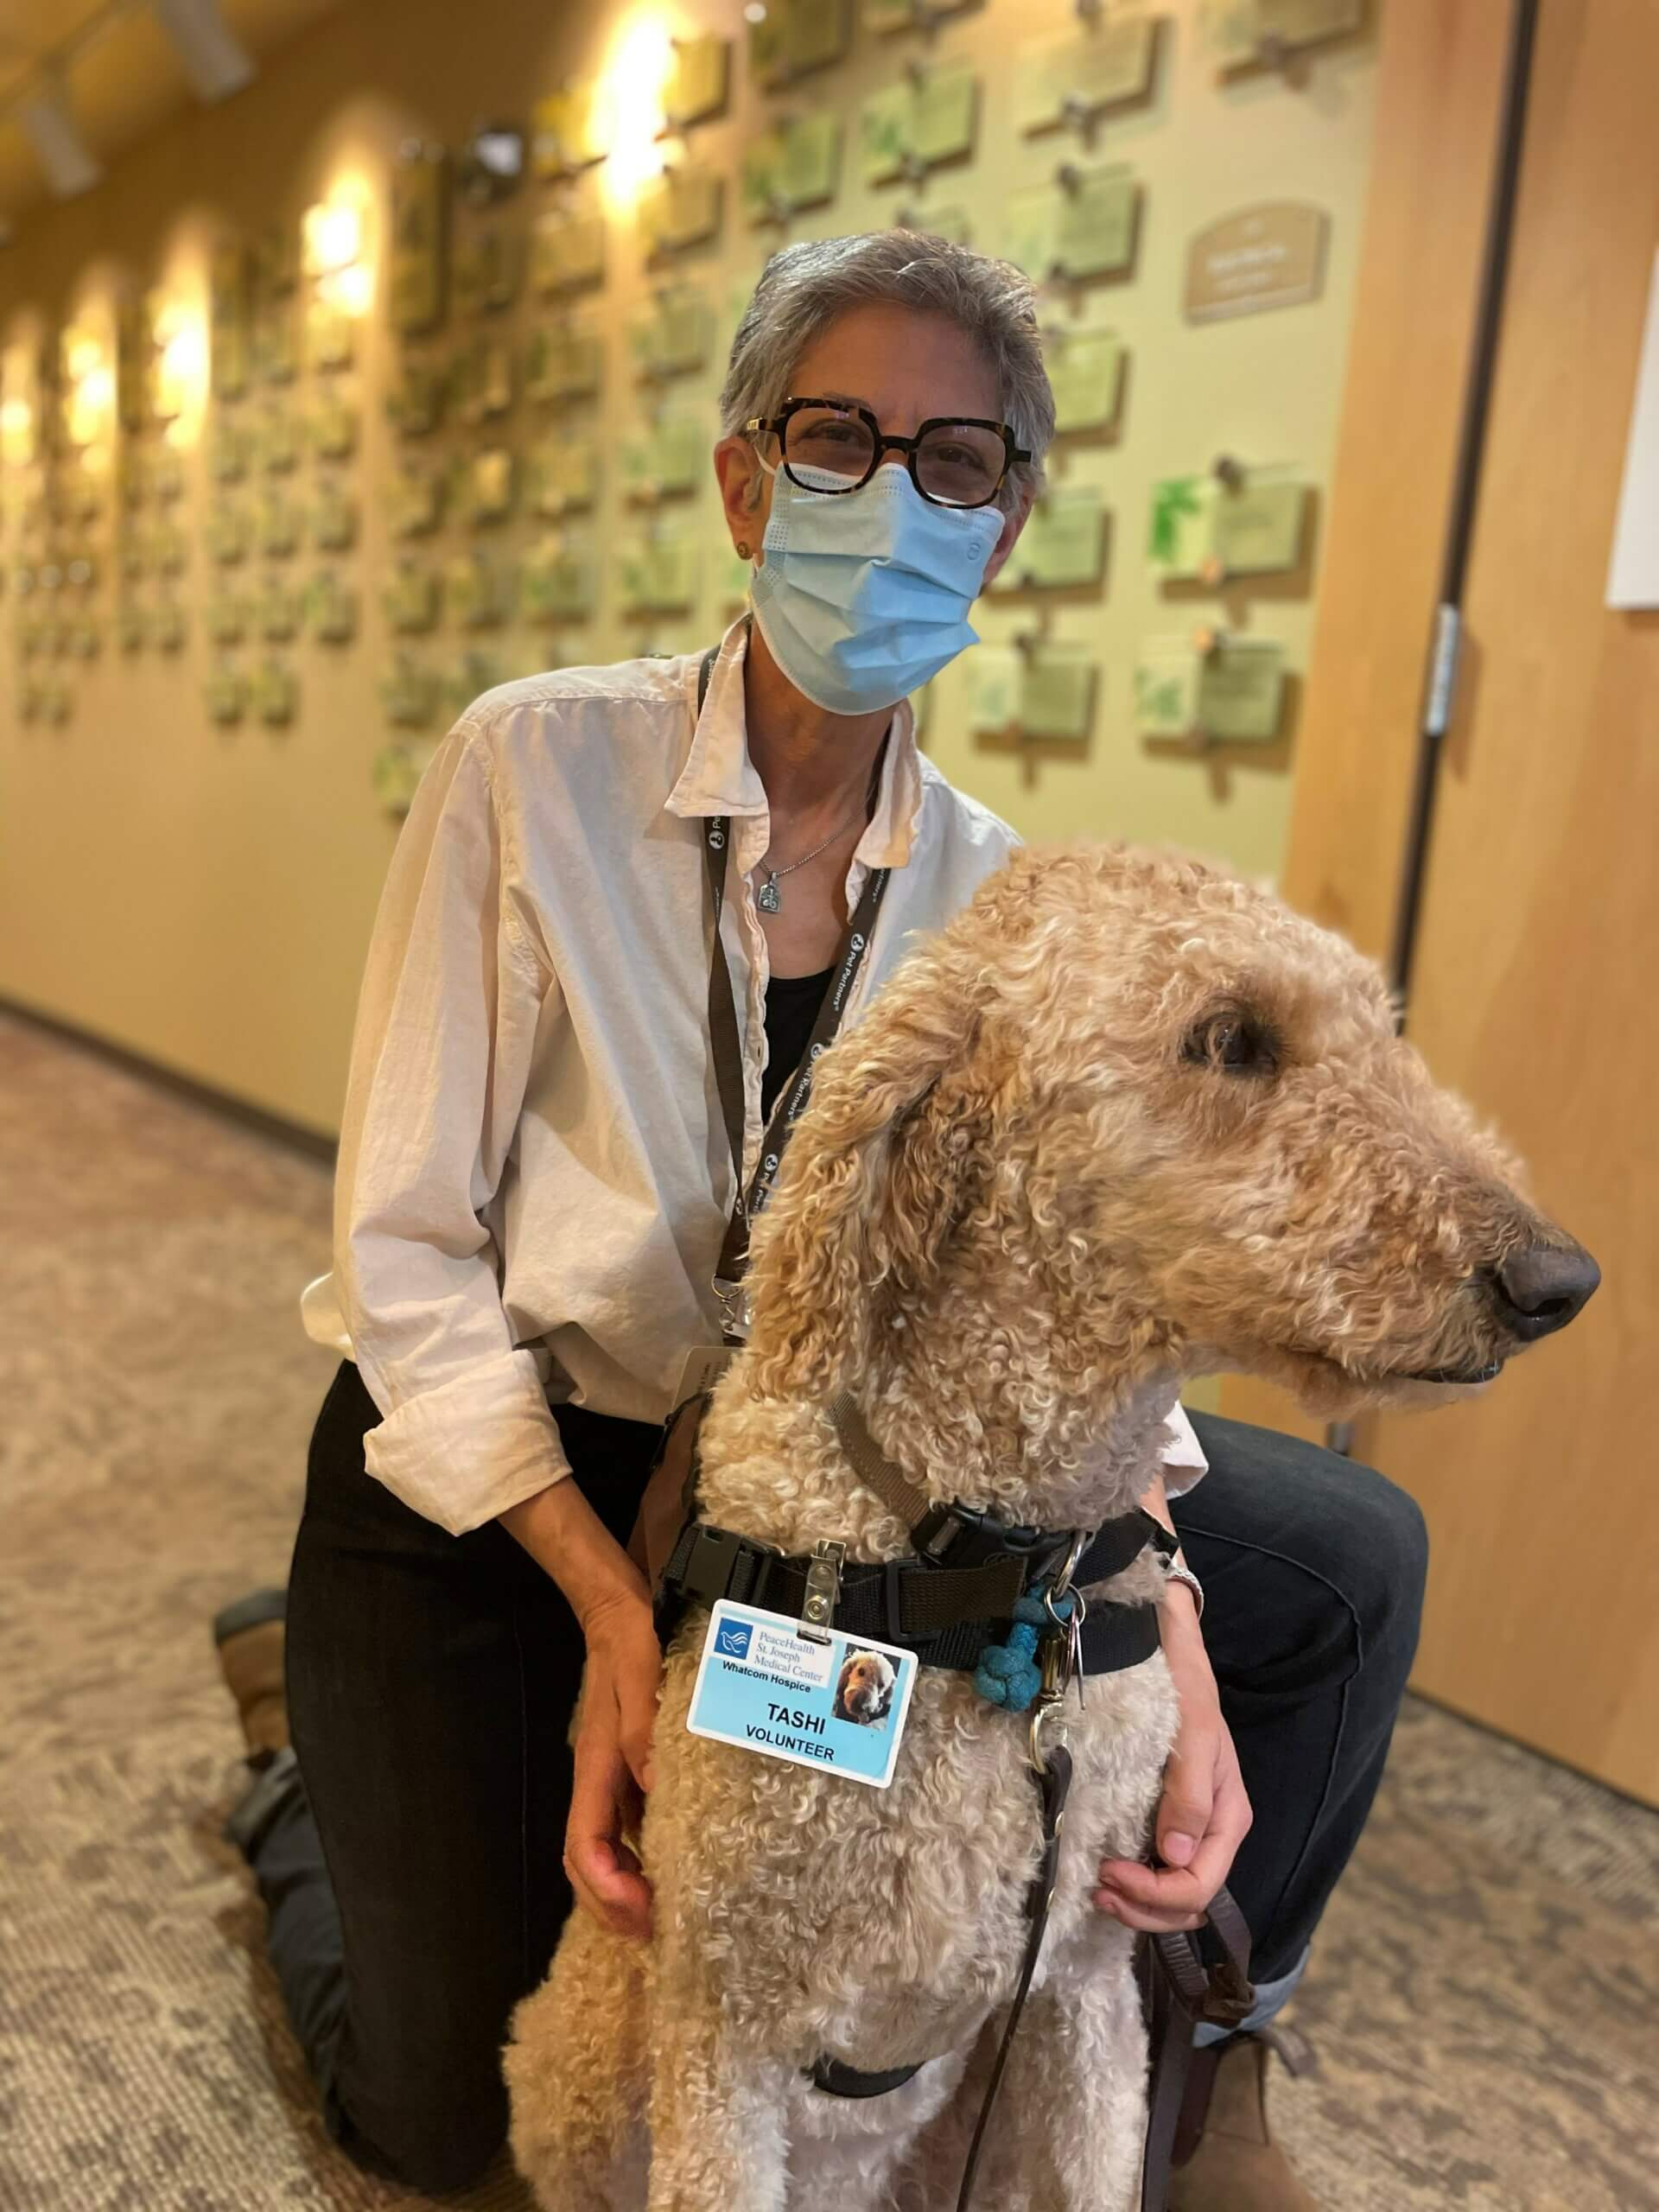 A therapy animal handler and her therapy dog in a common space at a hospice facility